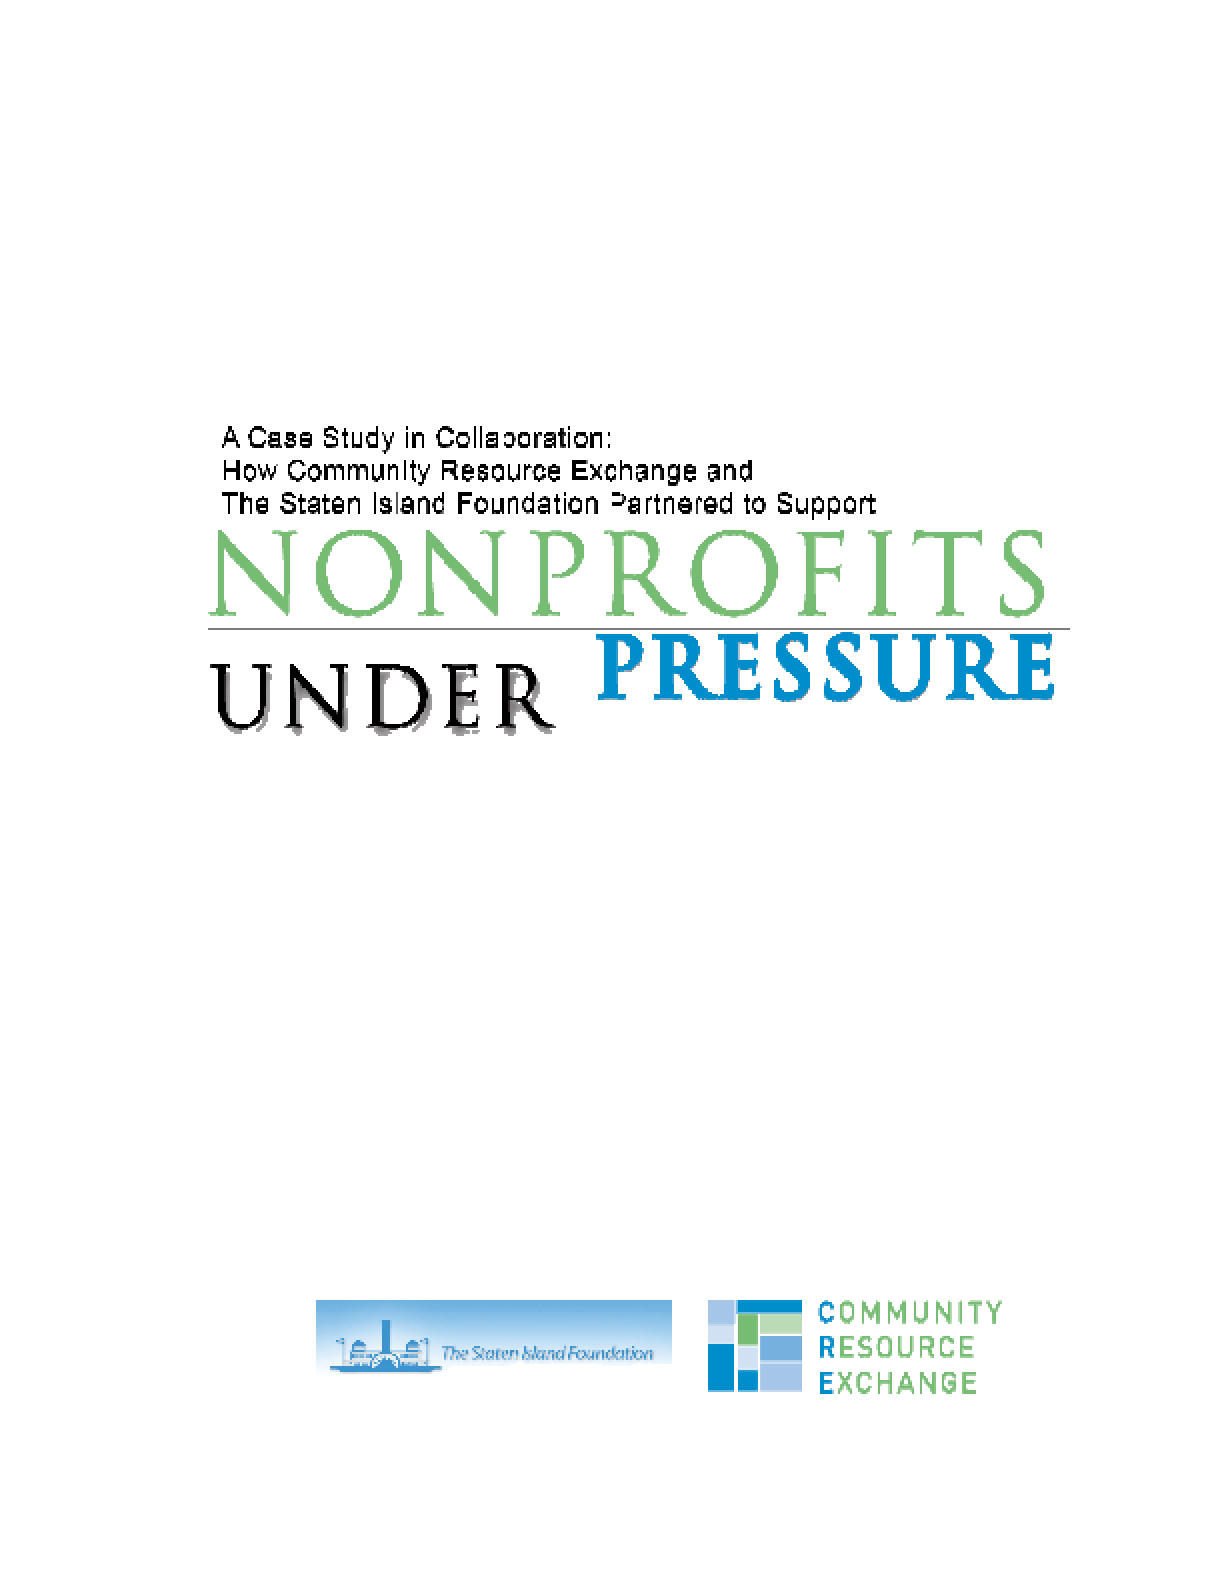 A Case Study in Collaboration: How Community Resource Exchange and the Staten Island Foundation Partnered to Support Nonprofits Under Pressure